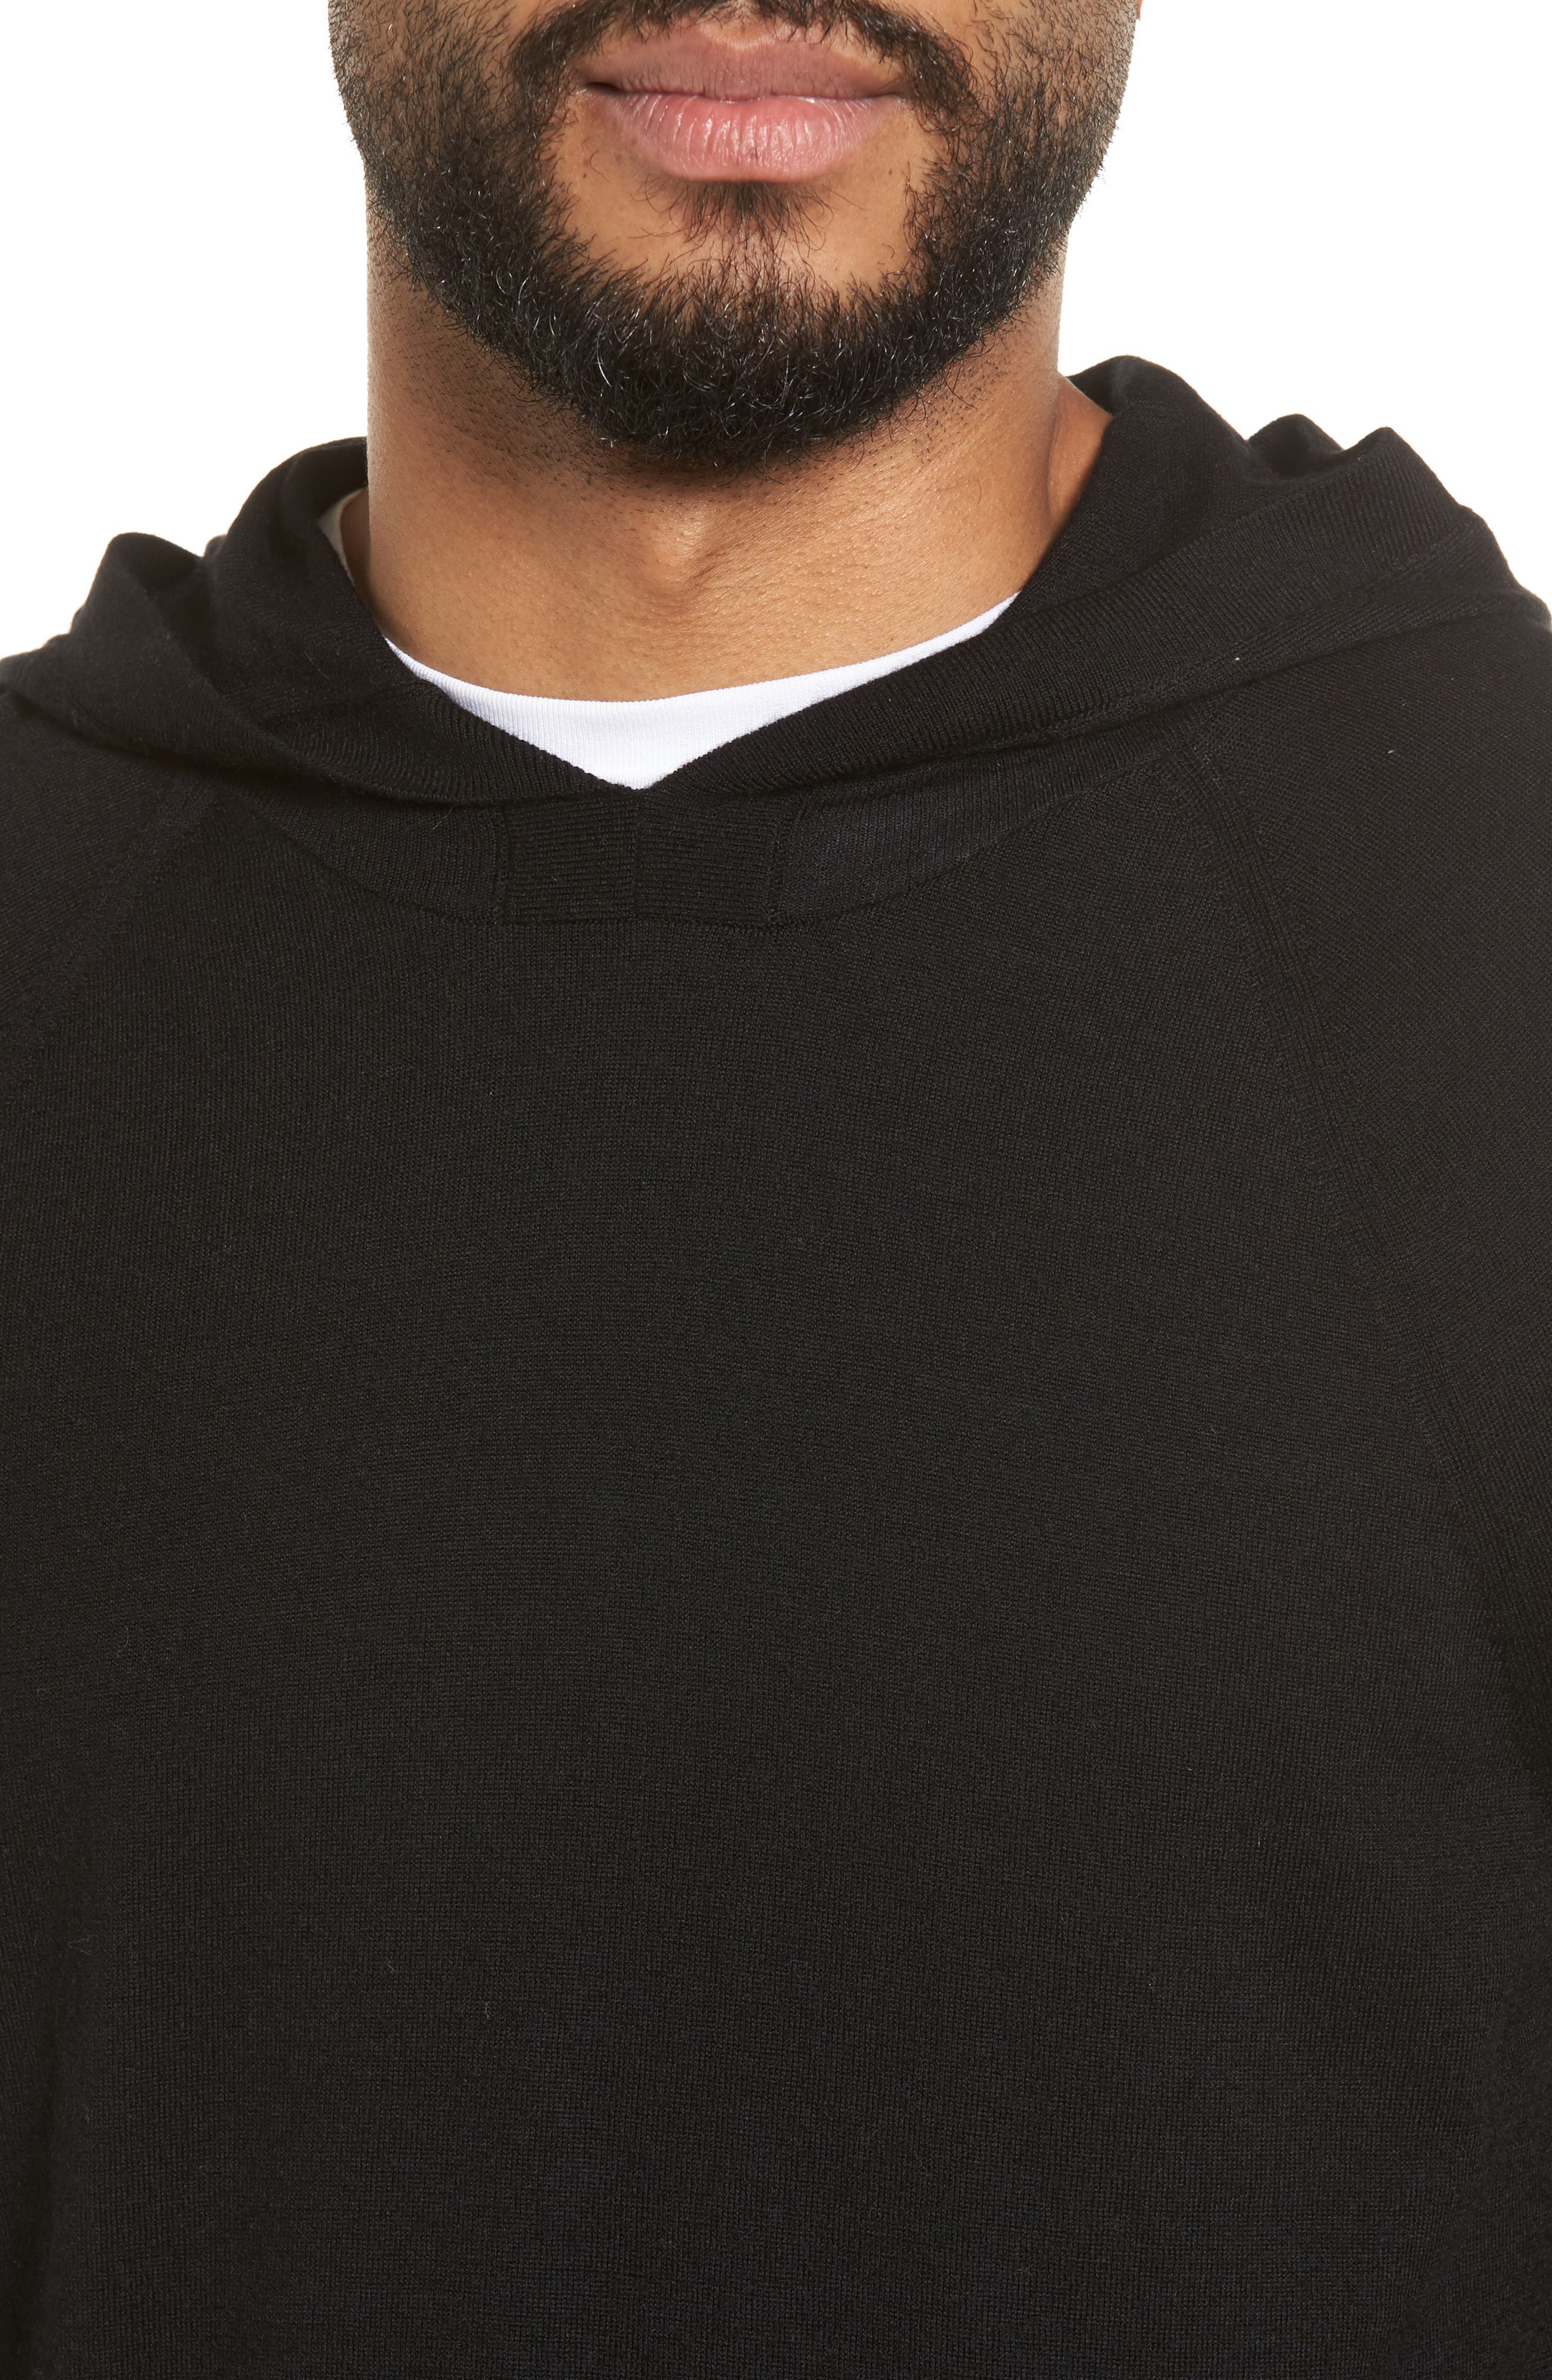 Wool & Cashmere Hoodie,                             Alternate thumbnail 4, color,                             001